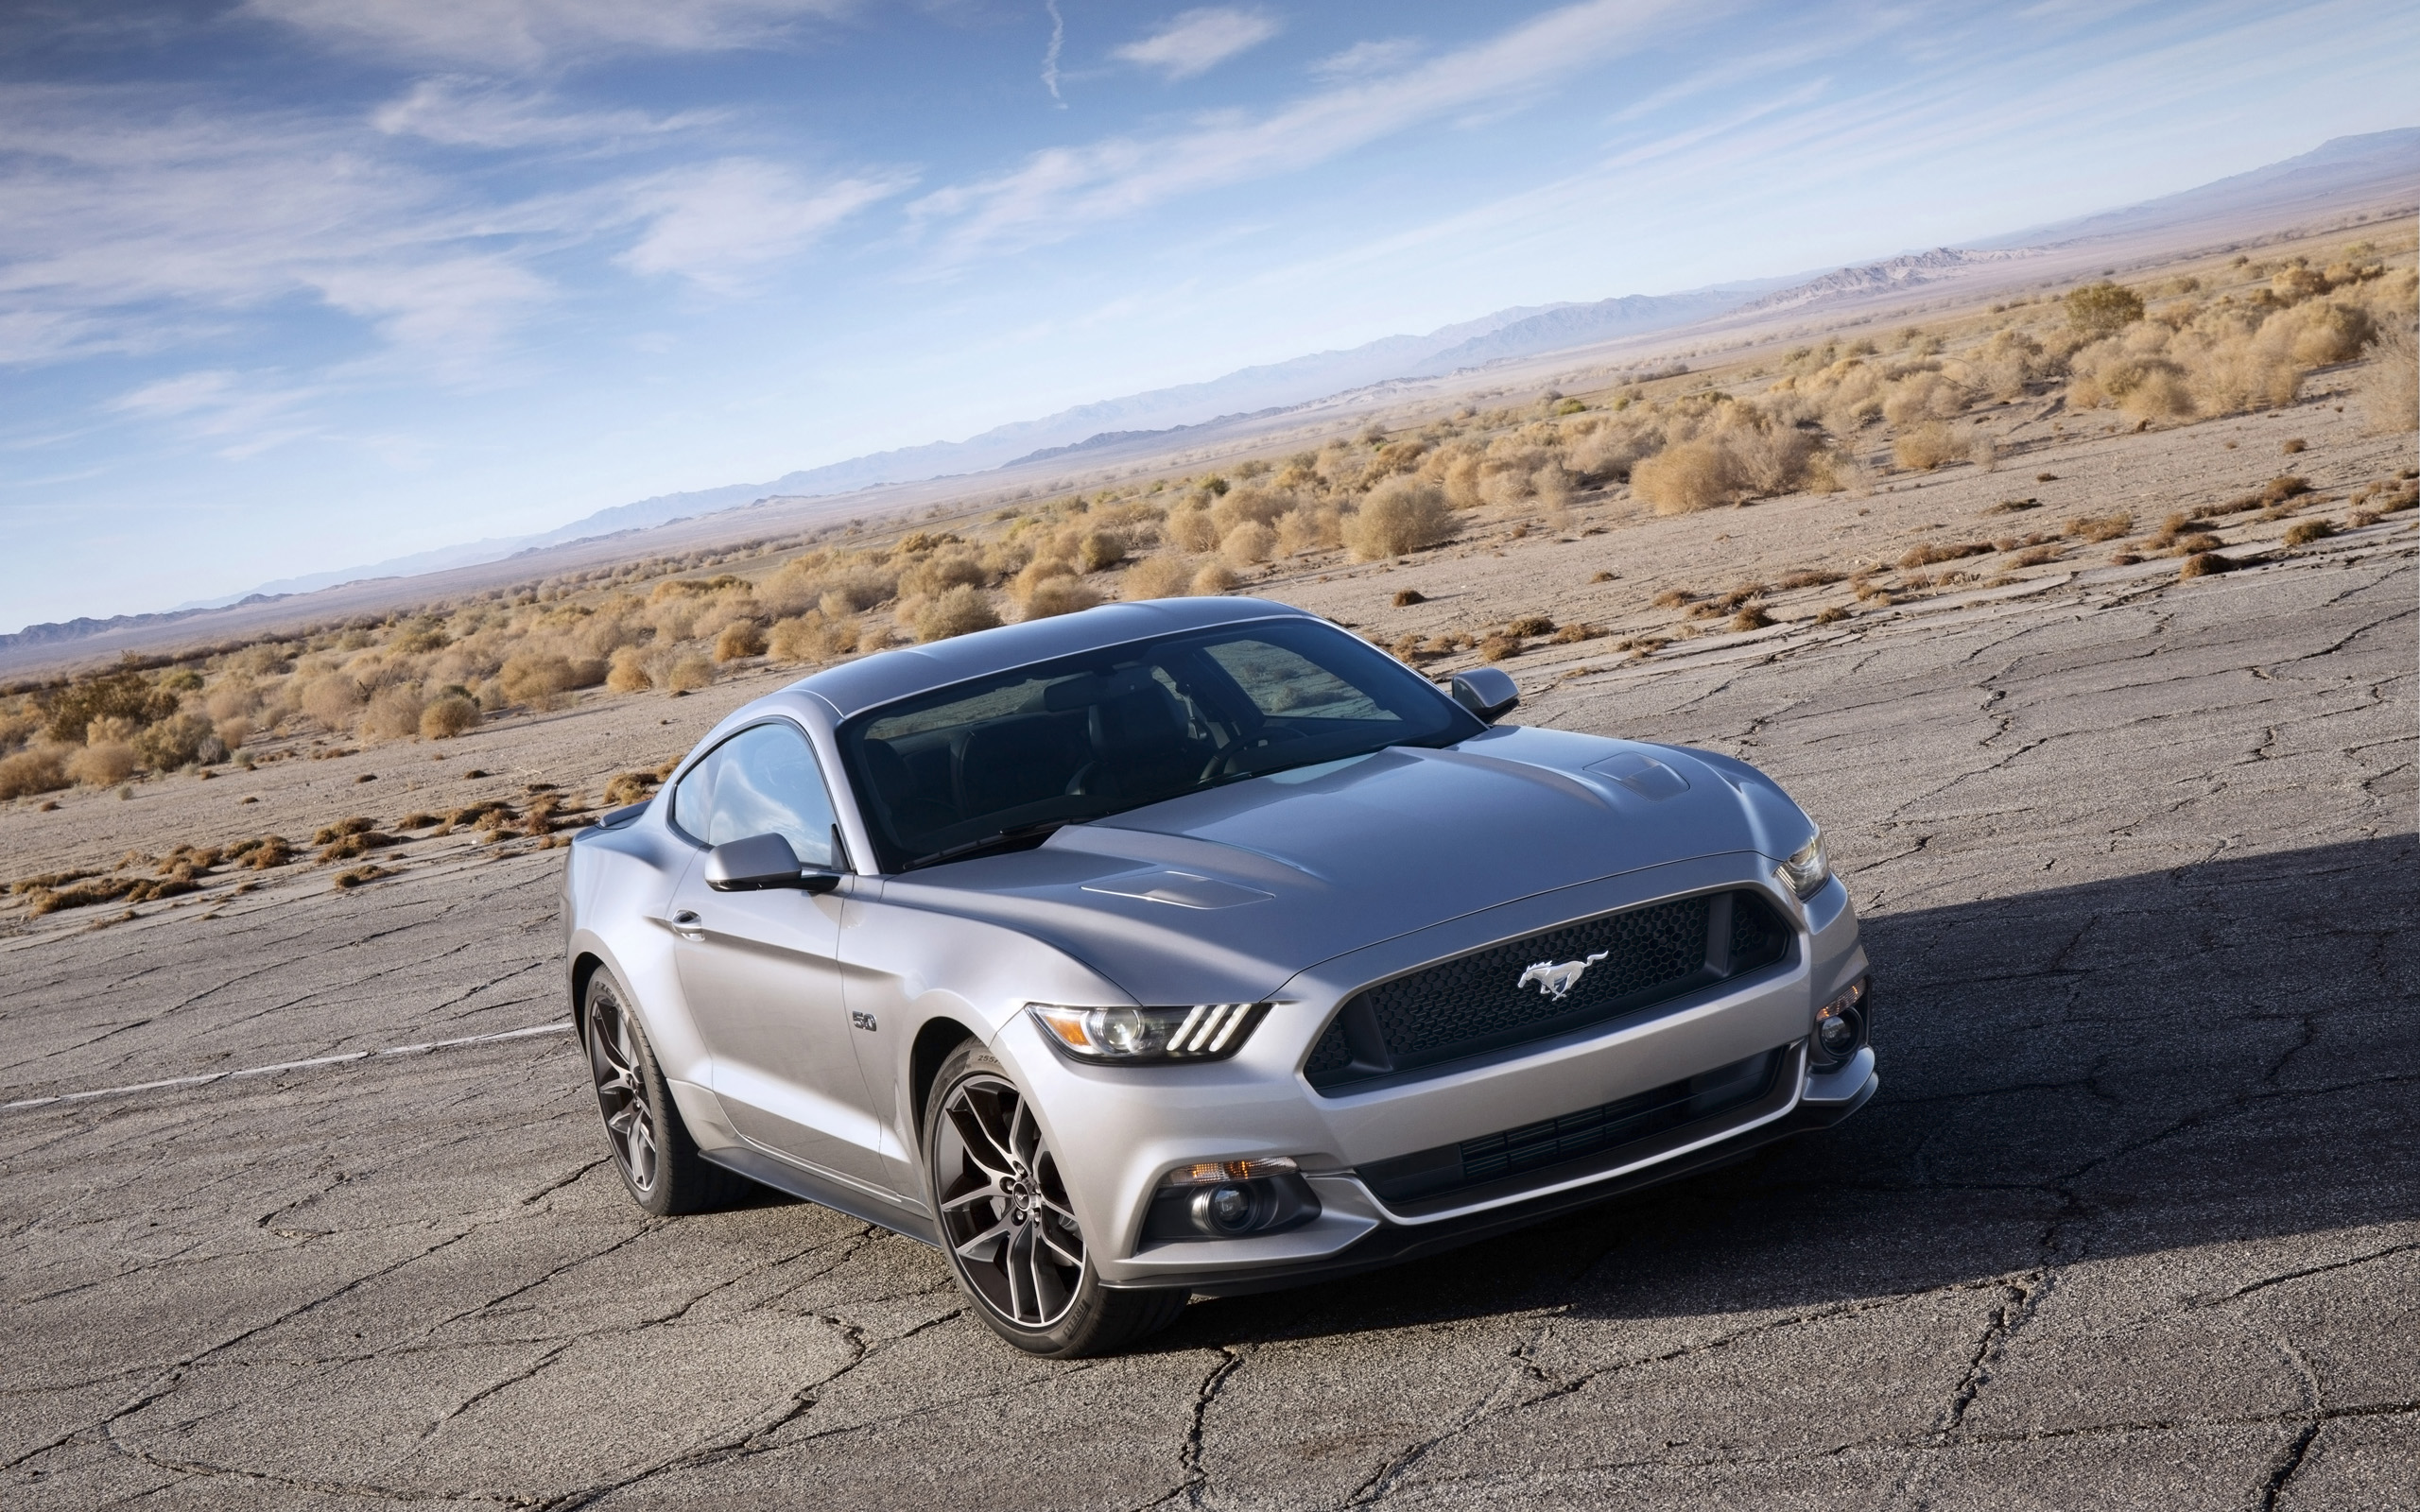 2015 Ford Mustang Widescreen Wallpaper